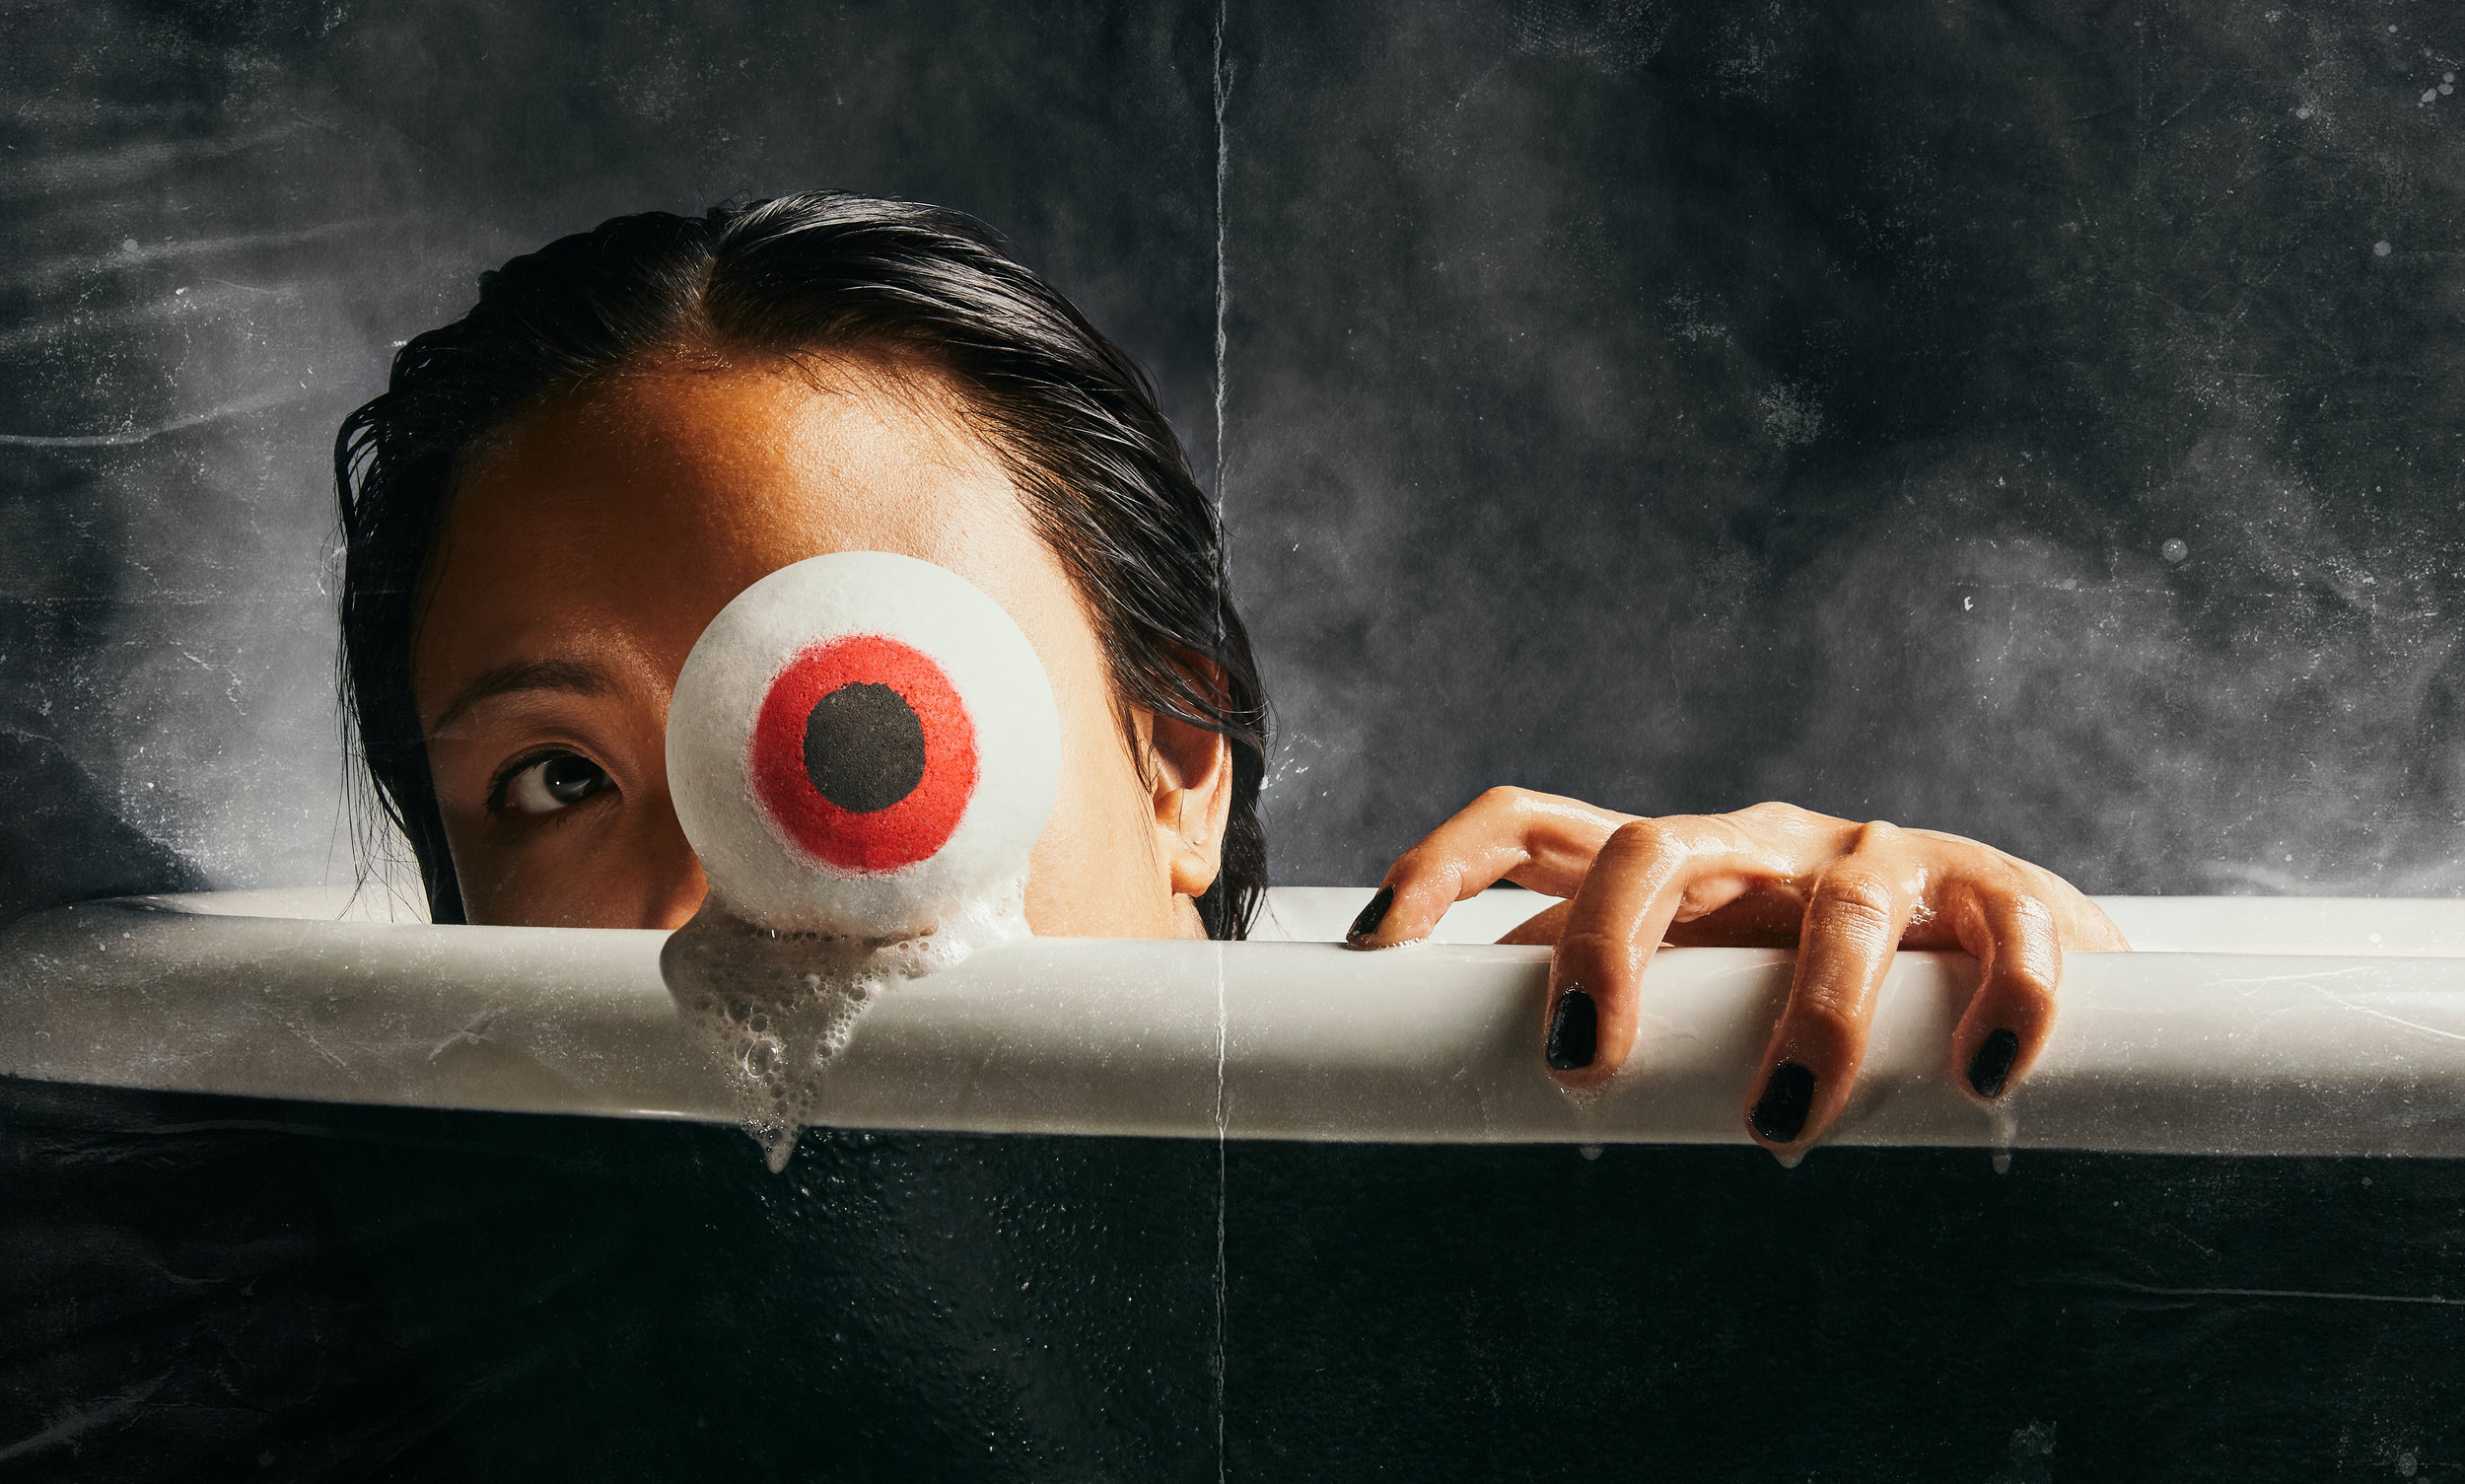 Eyeball_BathBomb_Horizontal_1.jpg